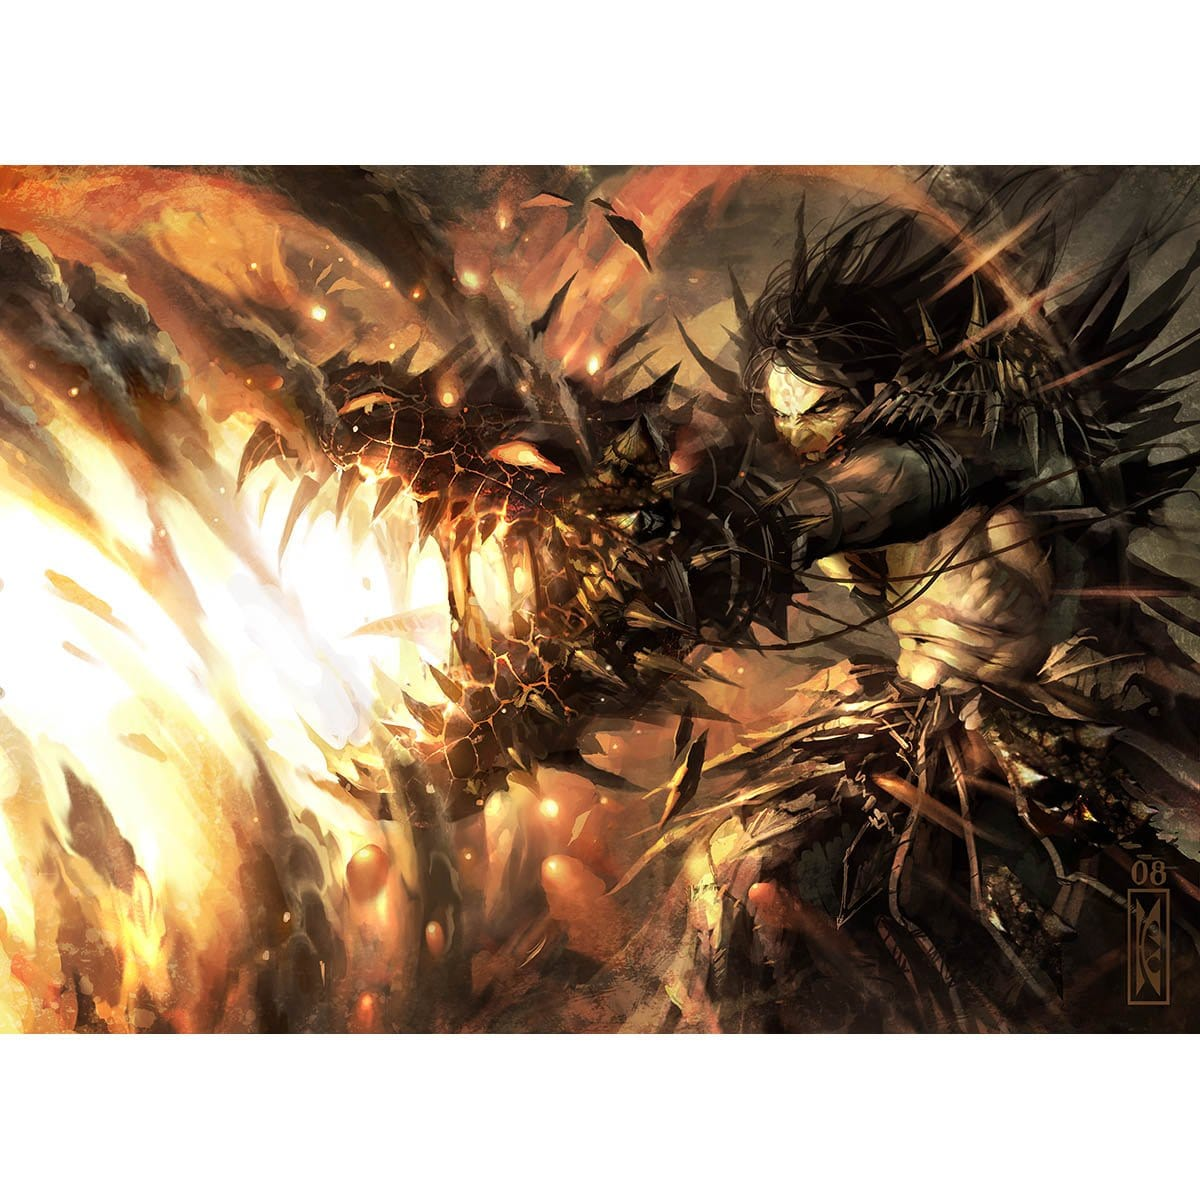 Banefire Print - Print - Original Magic Art - Accessories for Magic the Gathering and other card games